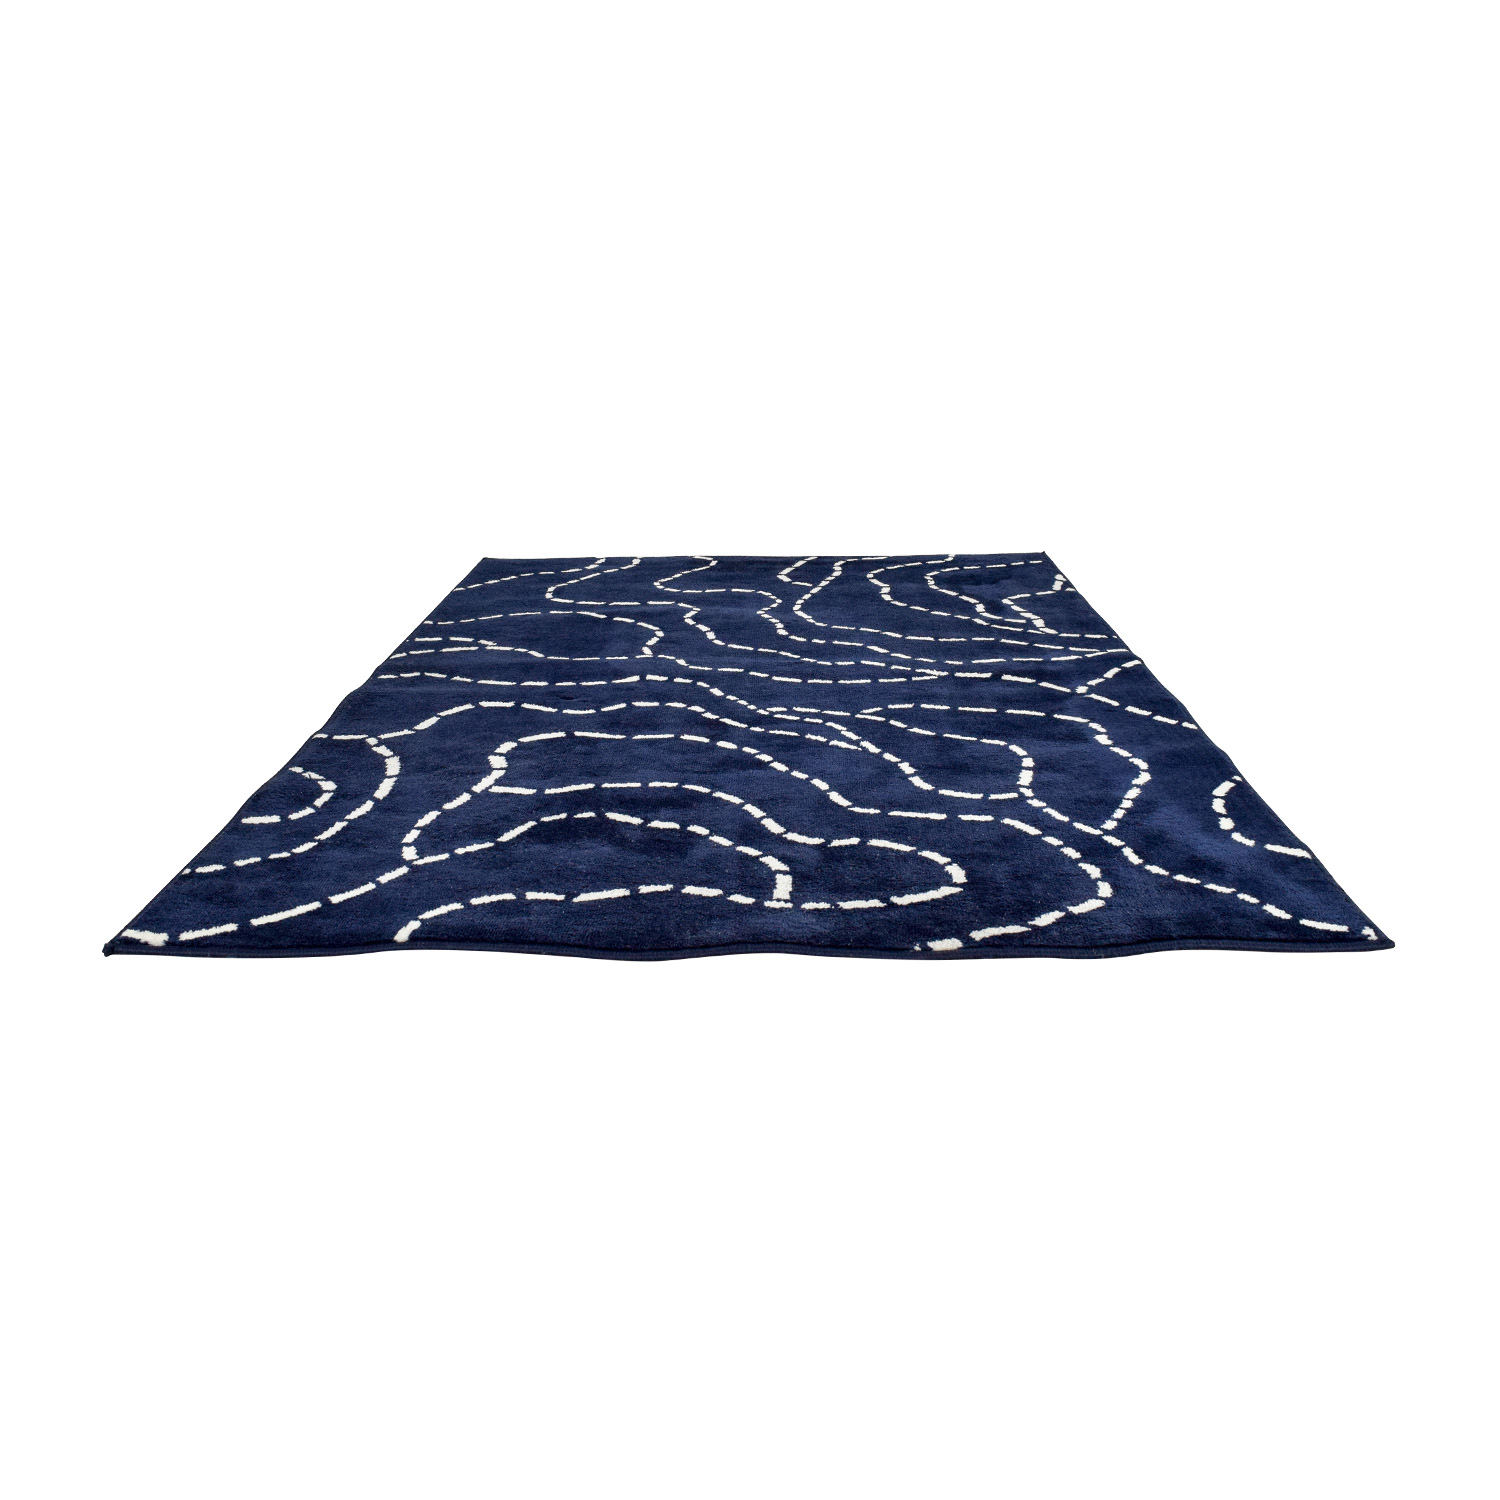 Unknown Brand Patterned Navy Floor Rug nyc